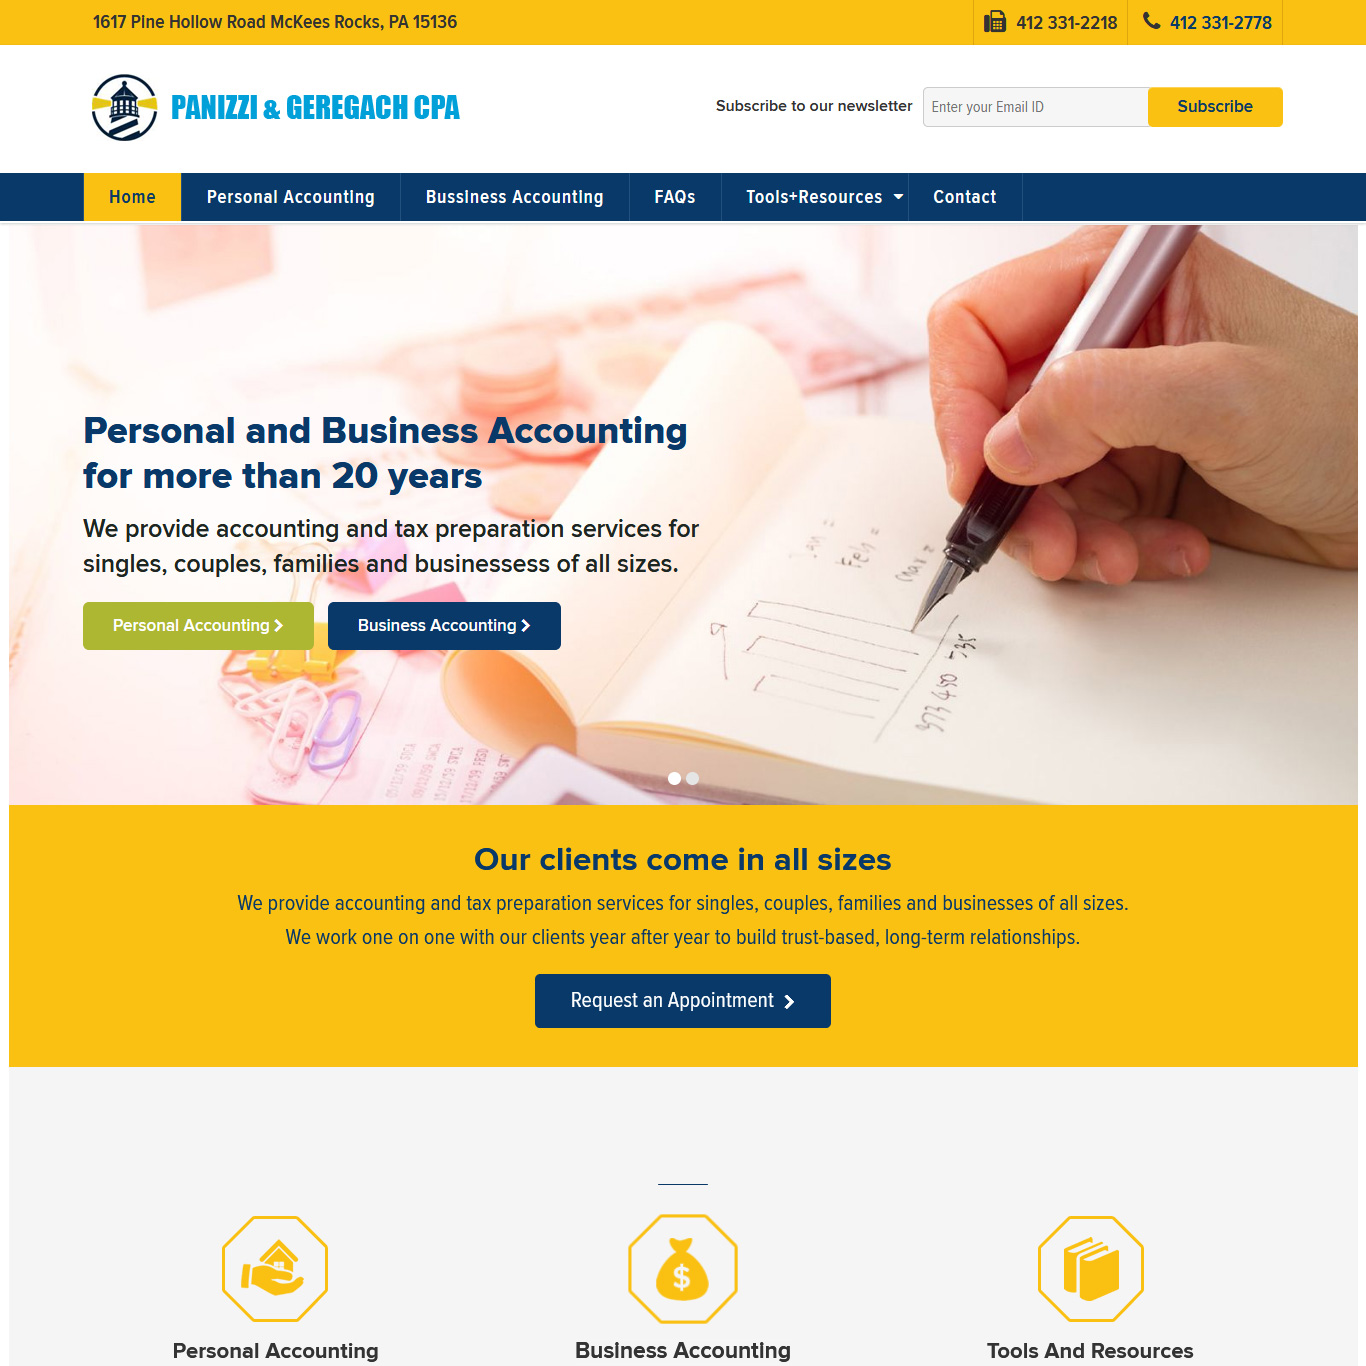 Panizzi and Geregach CPA accountants website design